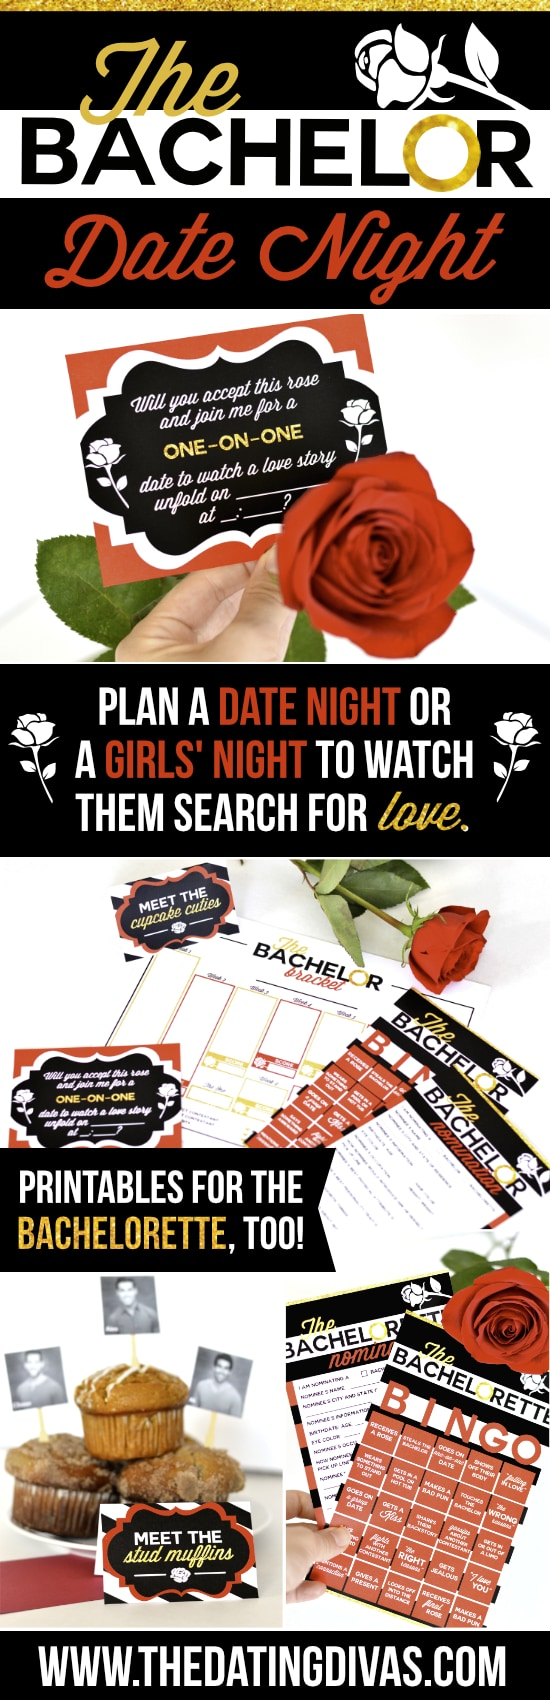 The Bachelor Viewing Party Date Night